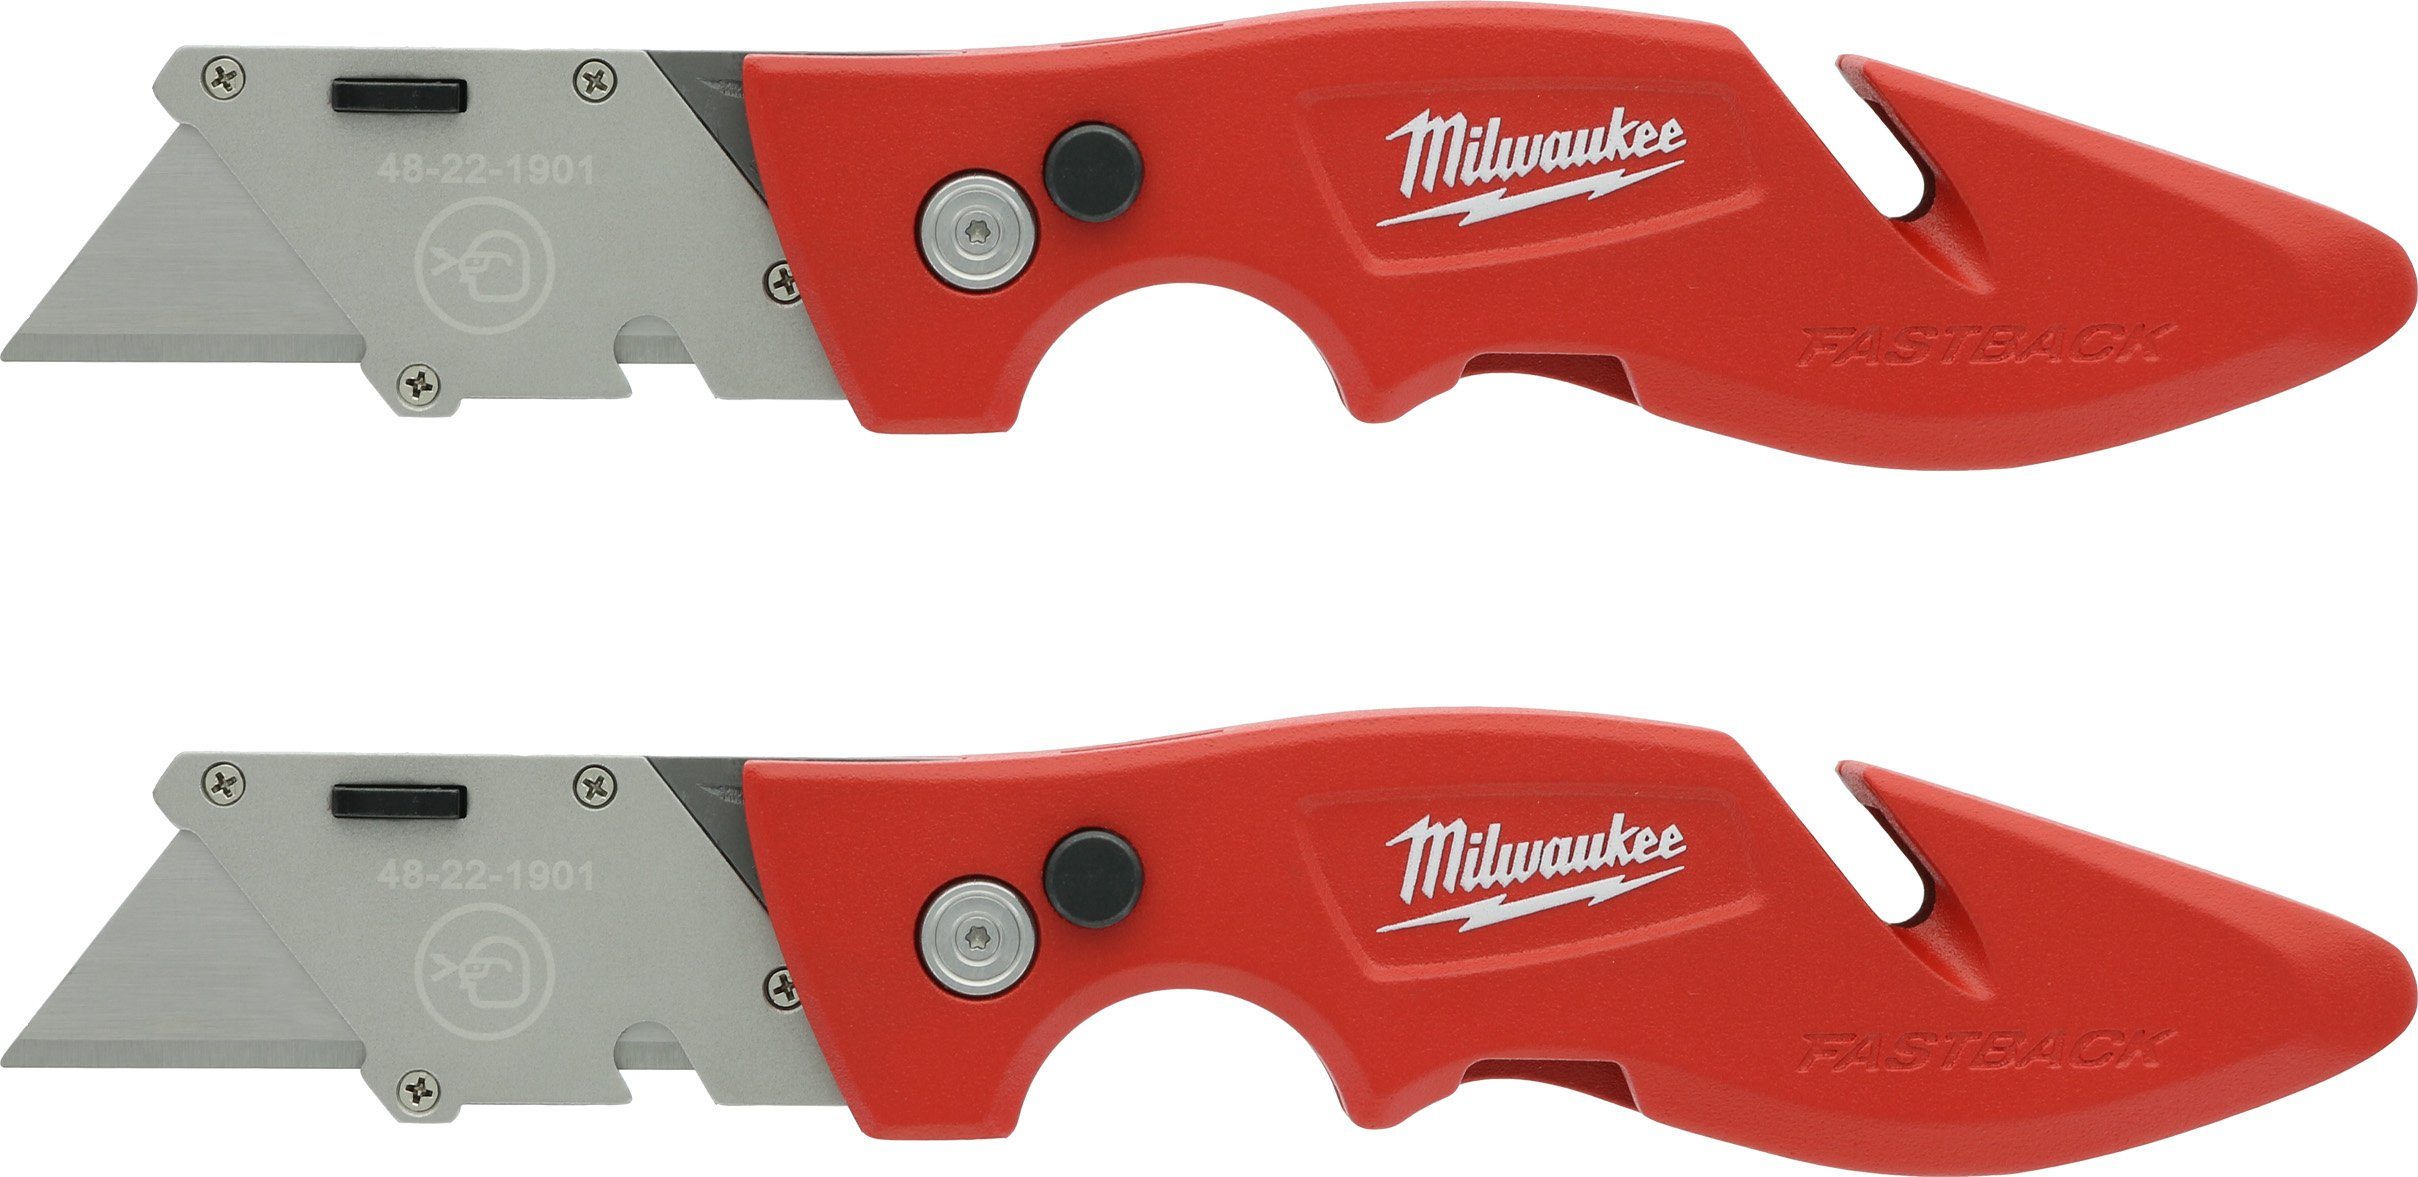 Milwaukee 48-22-1901F Fastback Utility Knife with Wire Stripping Compartment, and Gut Hook (2 Pack of 48-22-1901) by Milwaukee